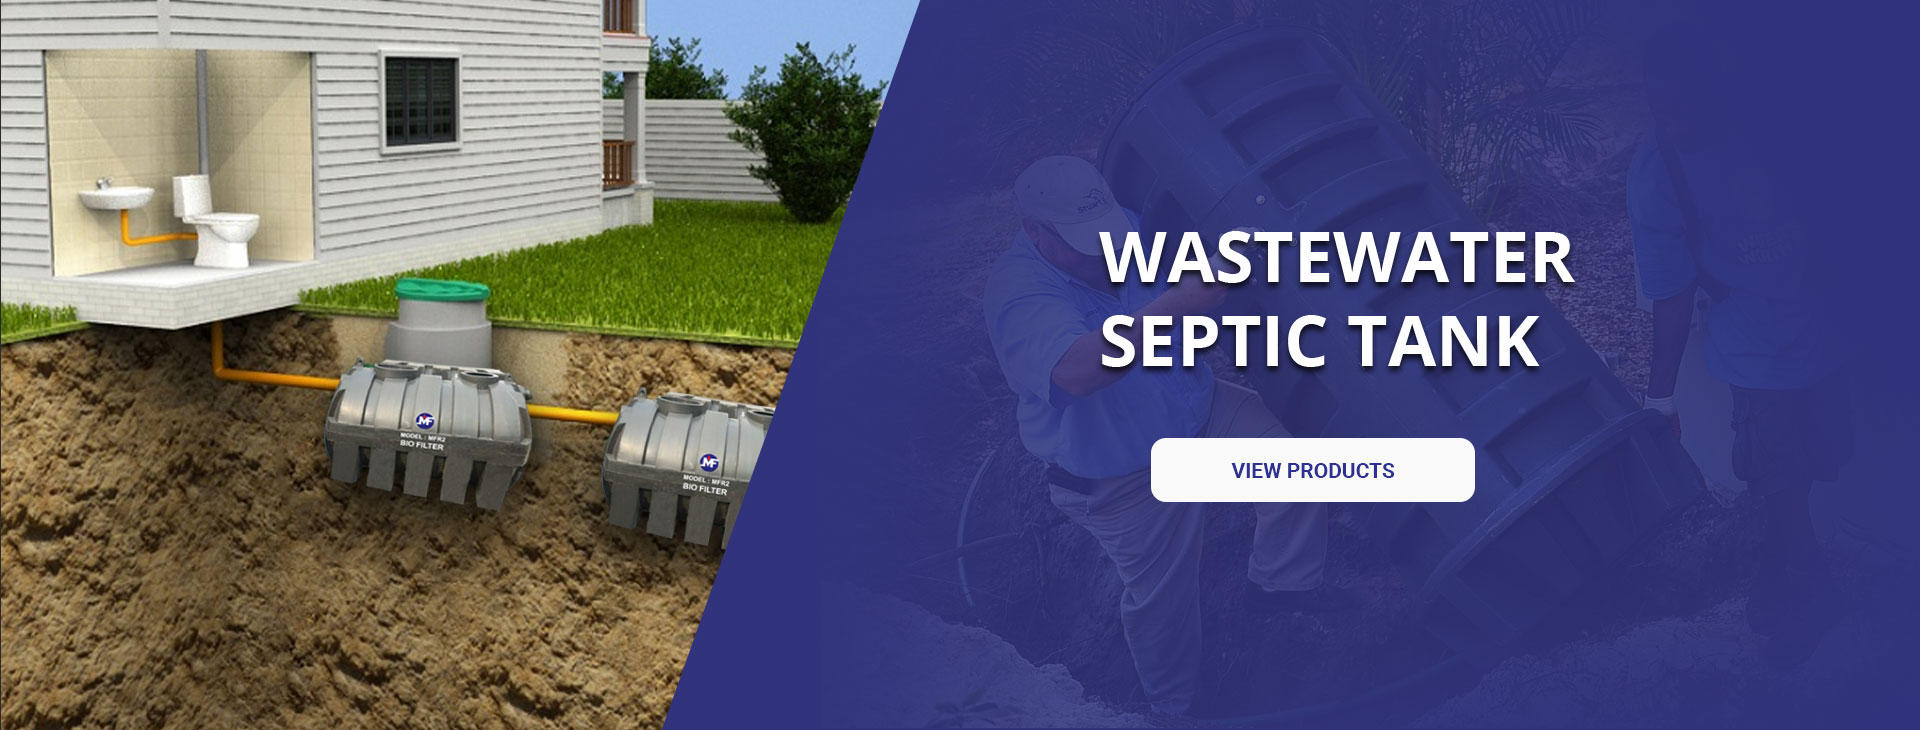 Wastewater Septic Tank